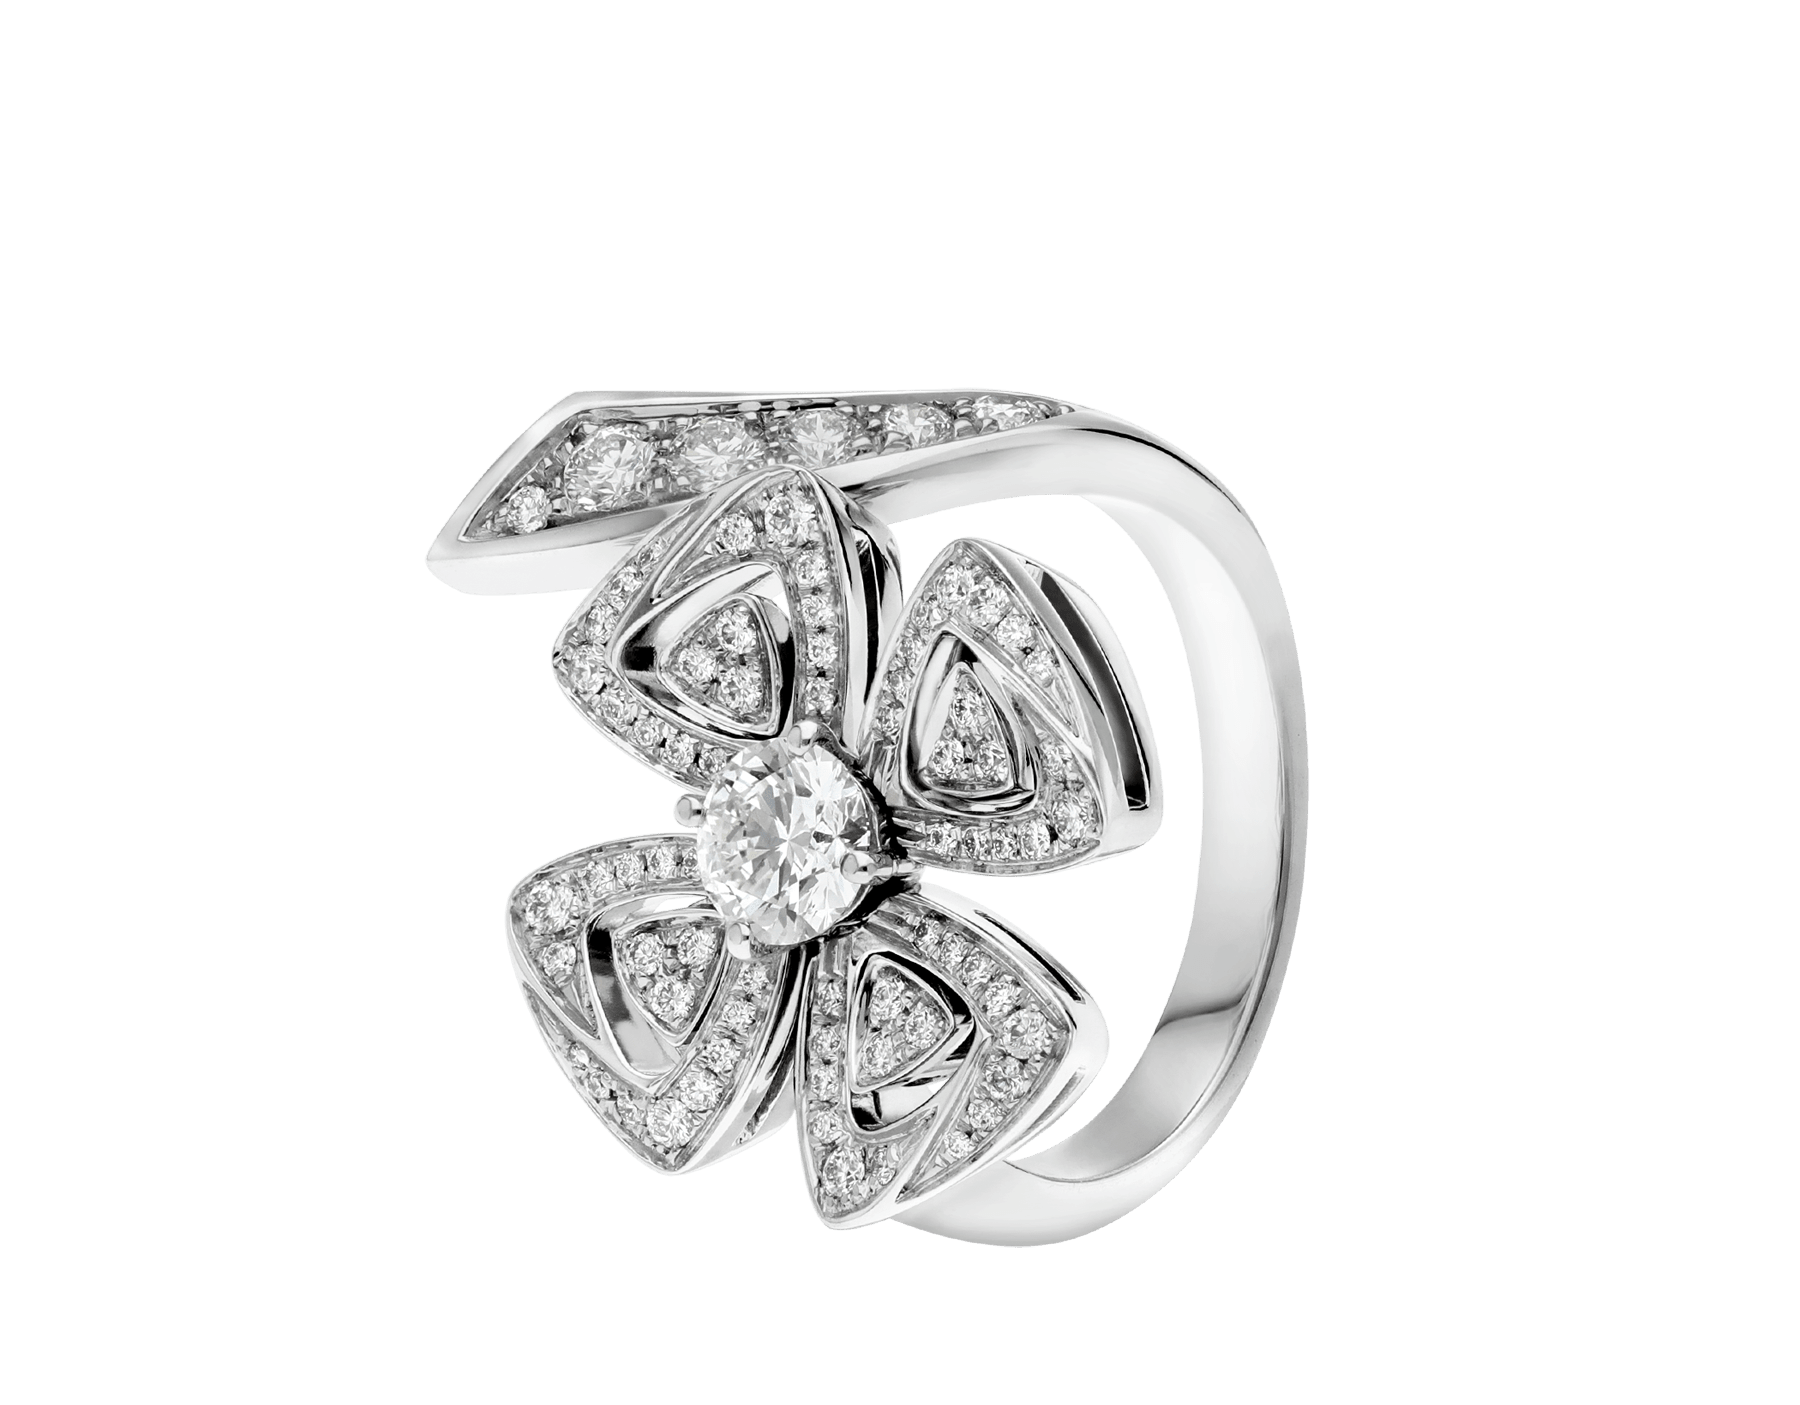 Fiorever 18 kt white gold ring set with a central round brilliant-cut diamond (0.30 ct) and pavé diamonds (0.37 ct) AN858691 image 1